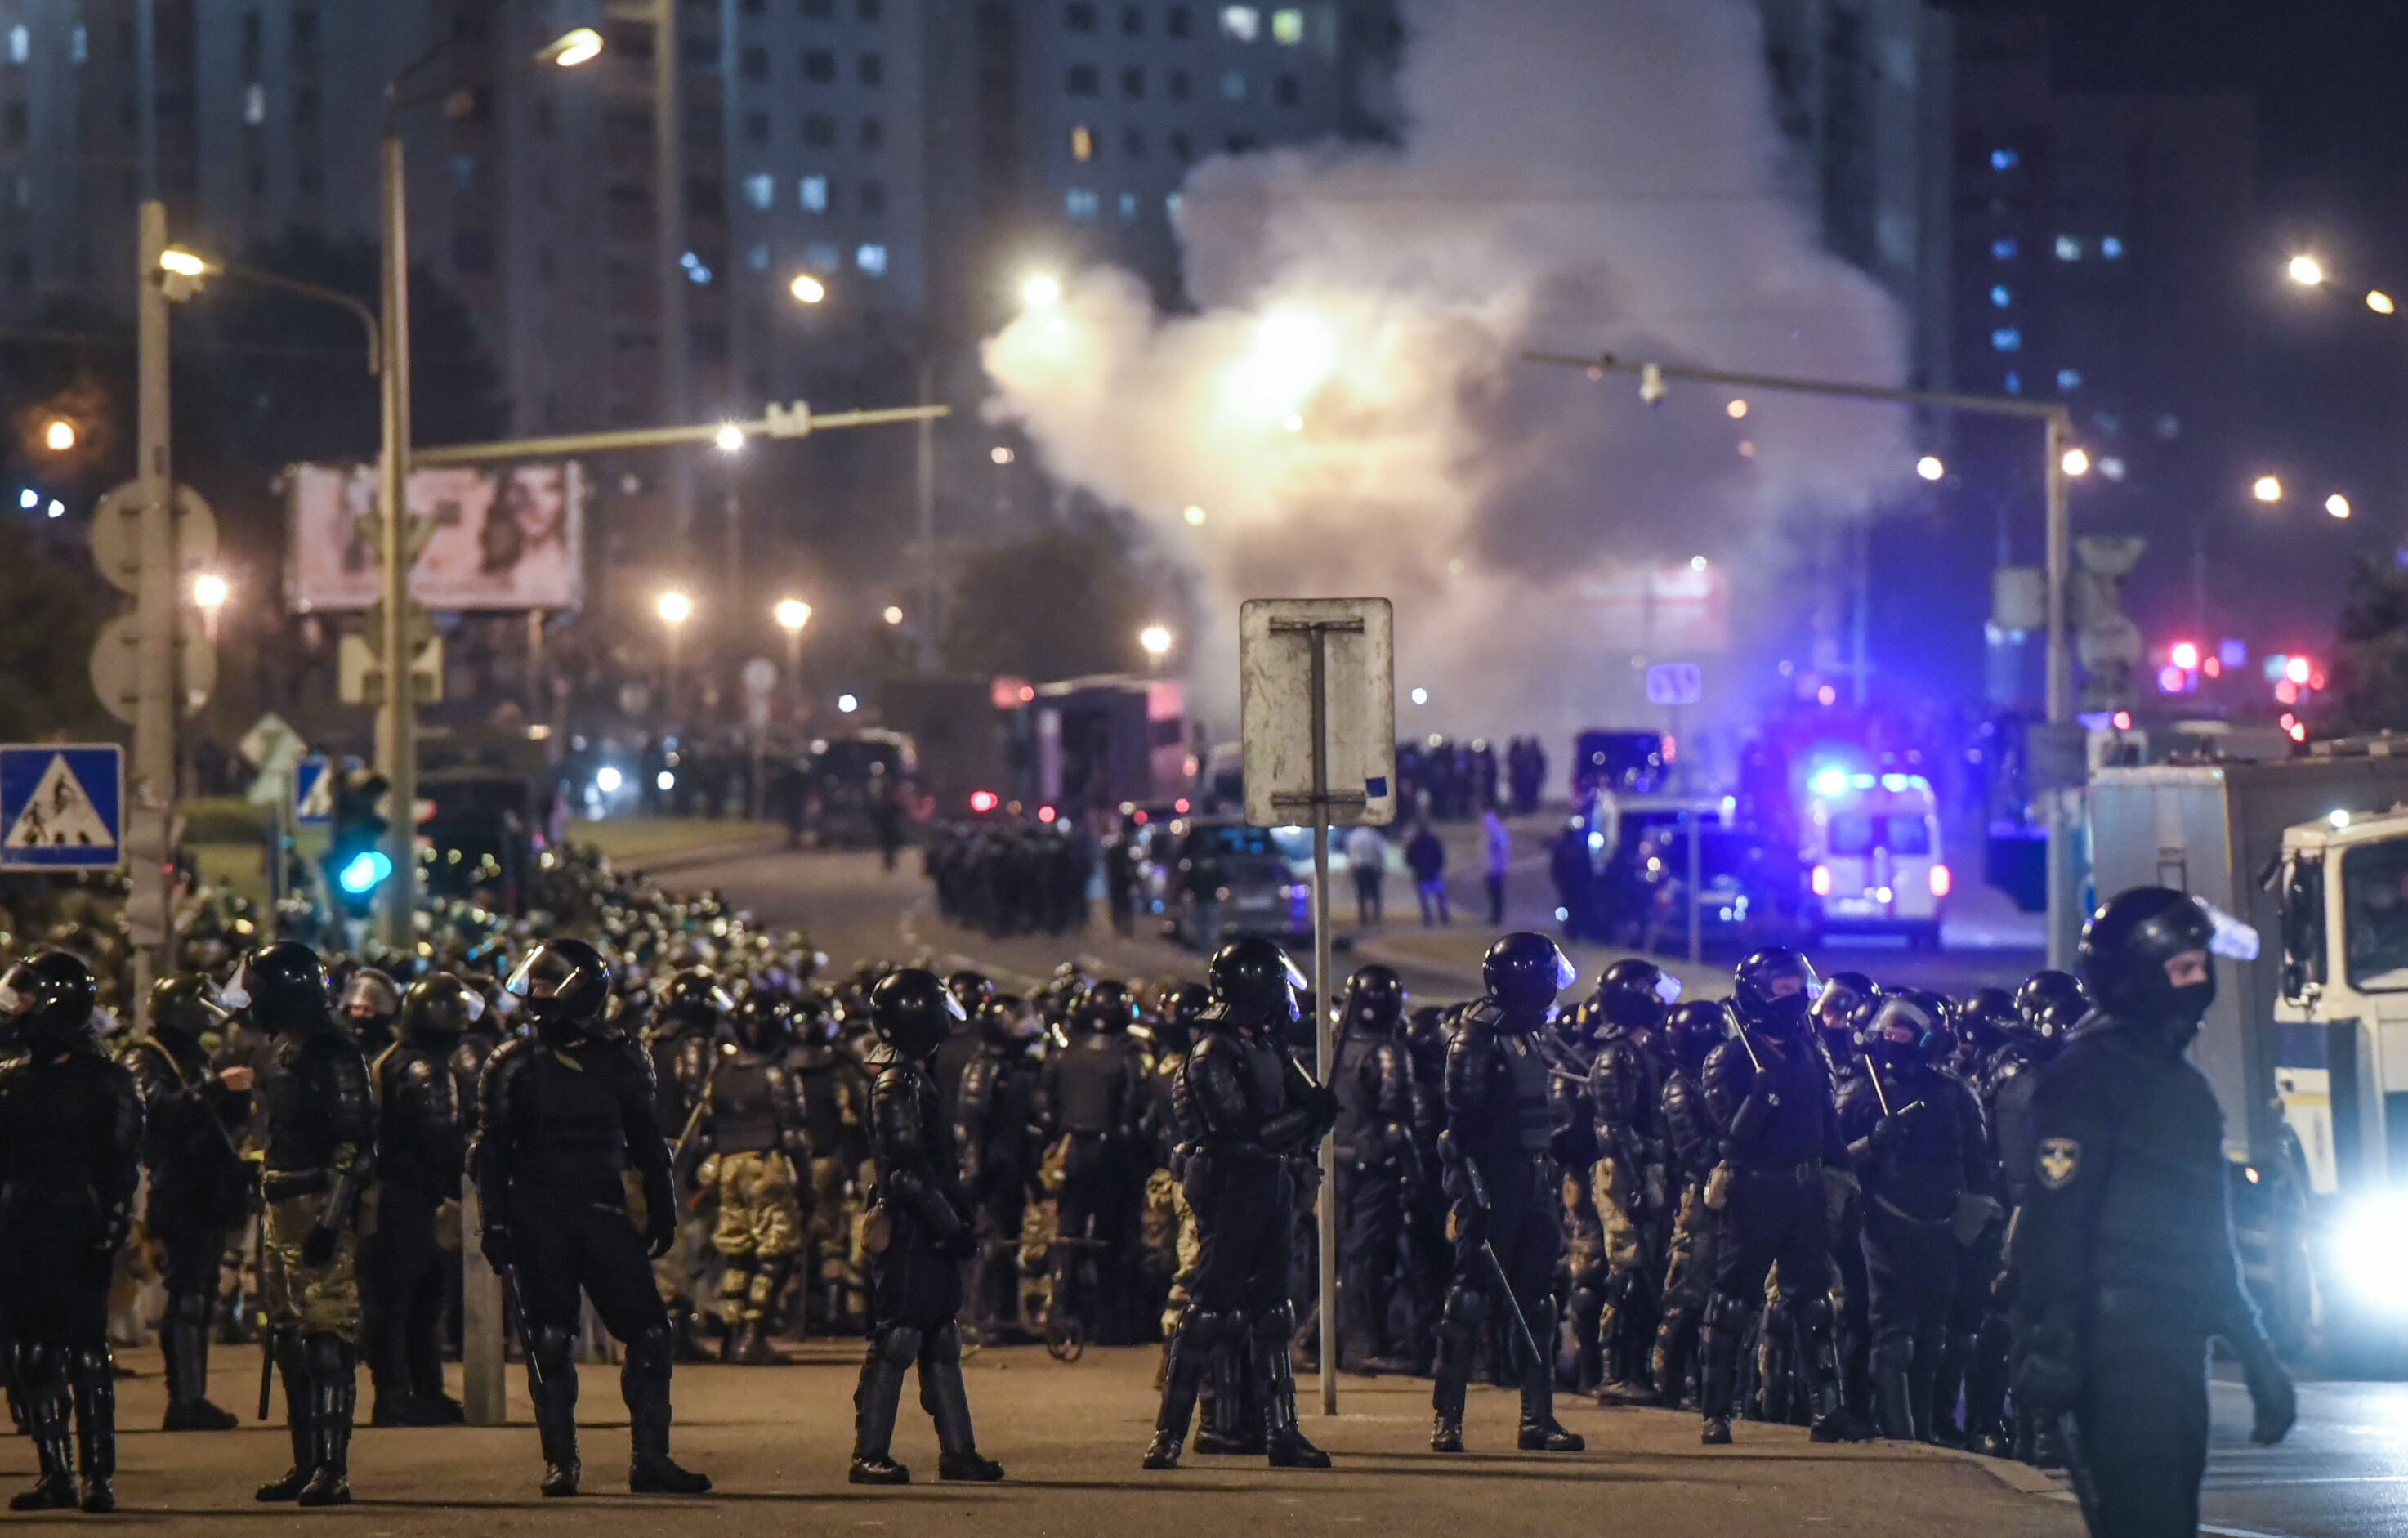 Hunderds of riot police were deployed in Minsk to contain the protests